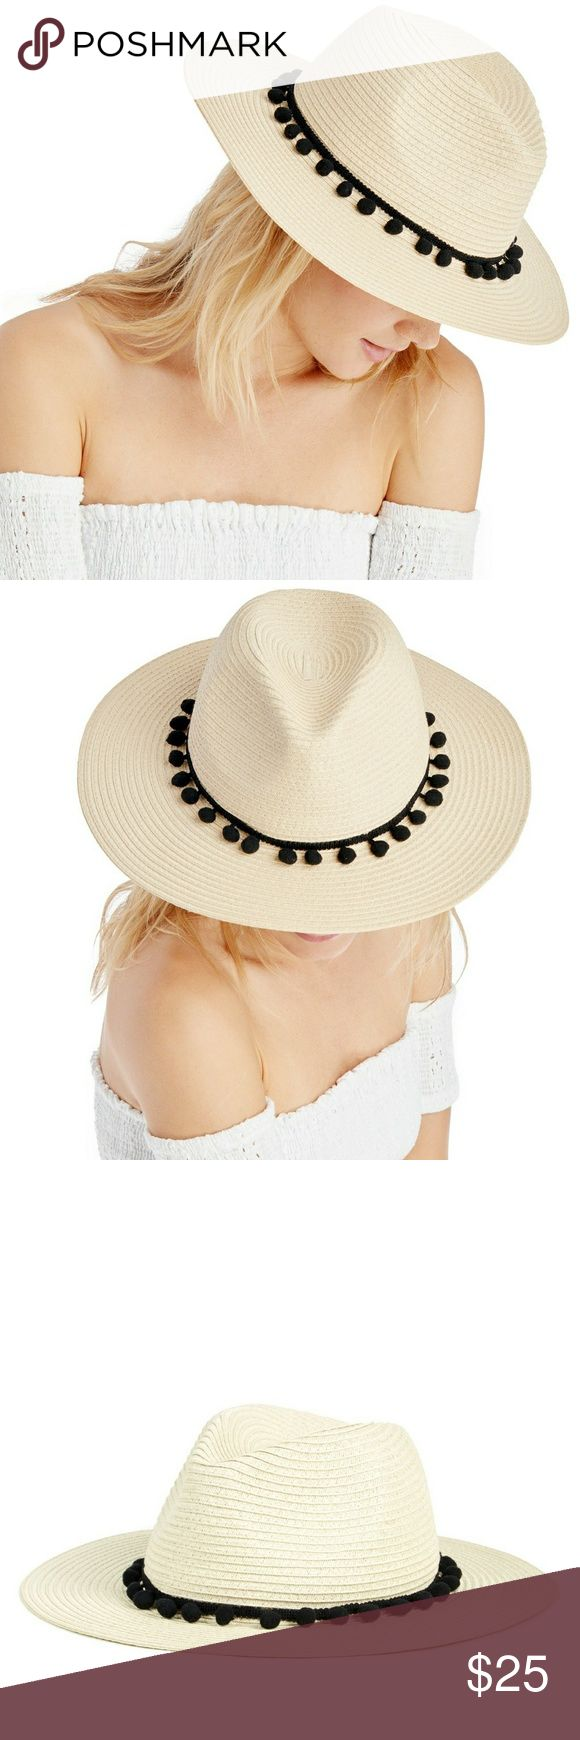 Last chance! Sole Society Straw Hat with Pompoms Brand New with tag! Sole Society Straw Panama Hat  -add vacation vibes to this look with a lighweight straw hat designed with a stylish pompom band! Sole Society Accessories